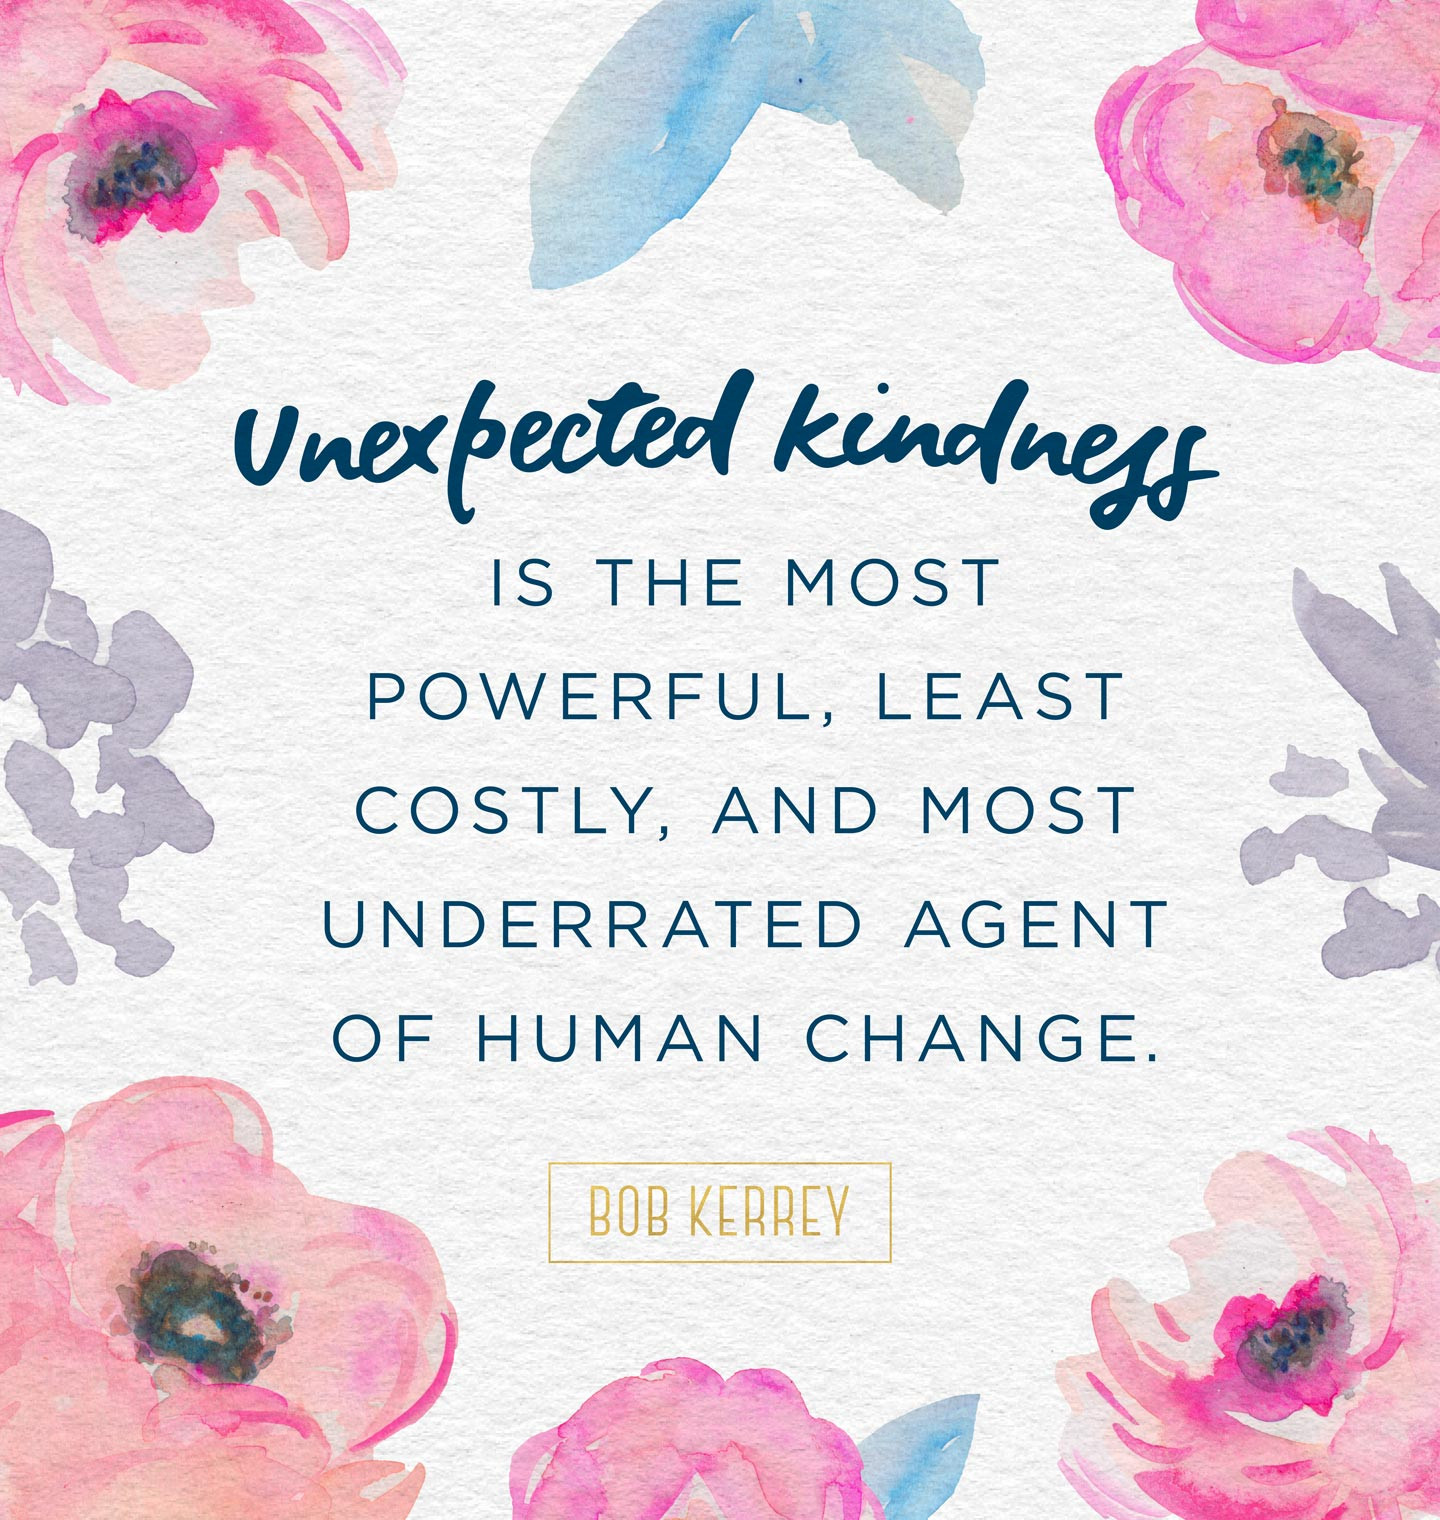 Quote For Kindness  30 Inspiring Kindness Quotes That Will Enlighten You FTD